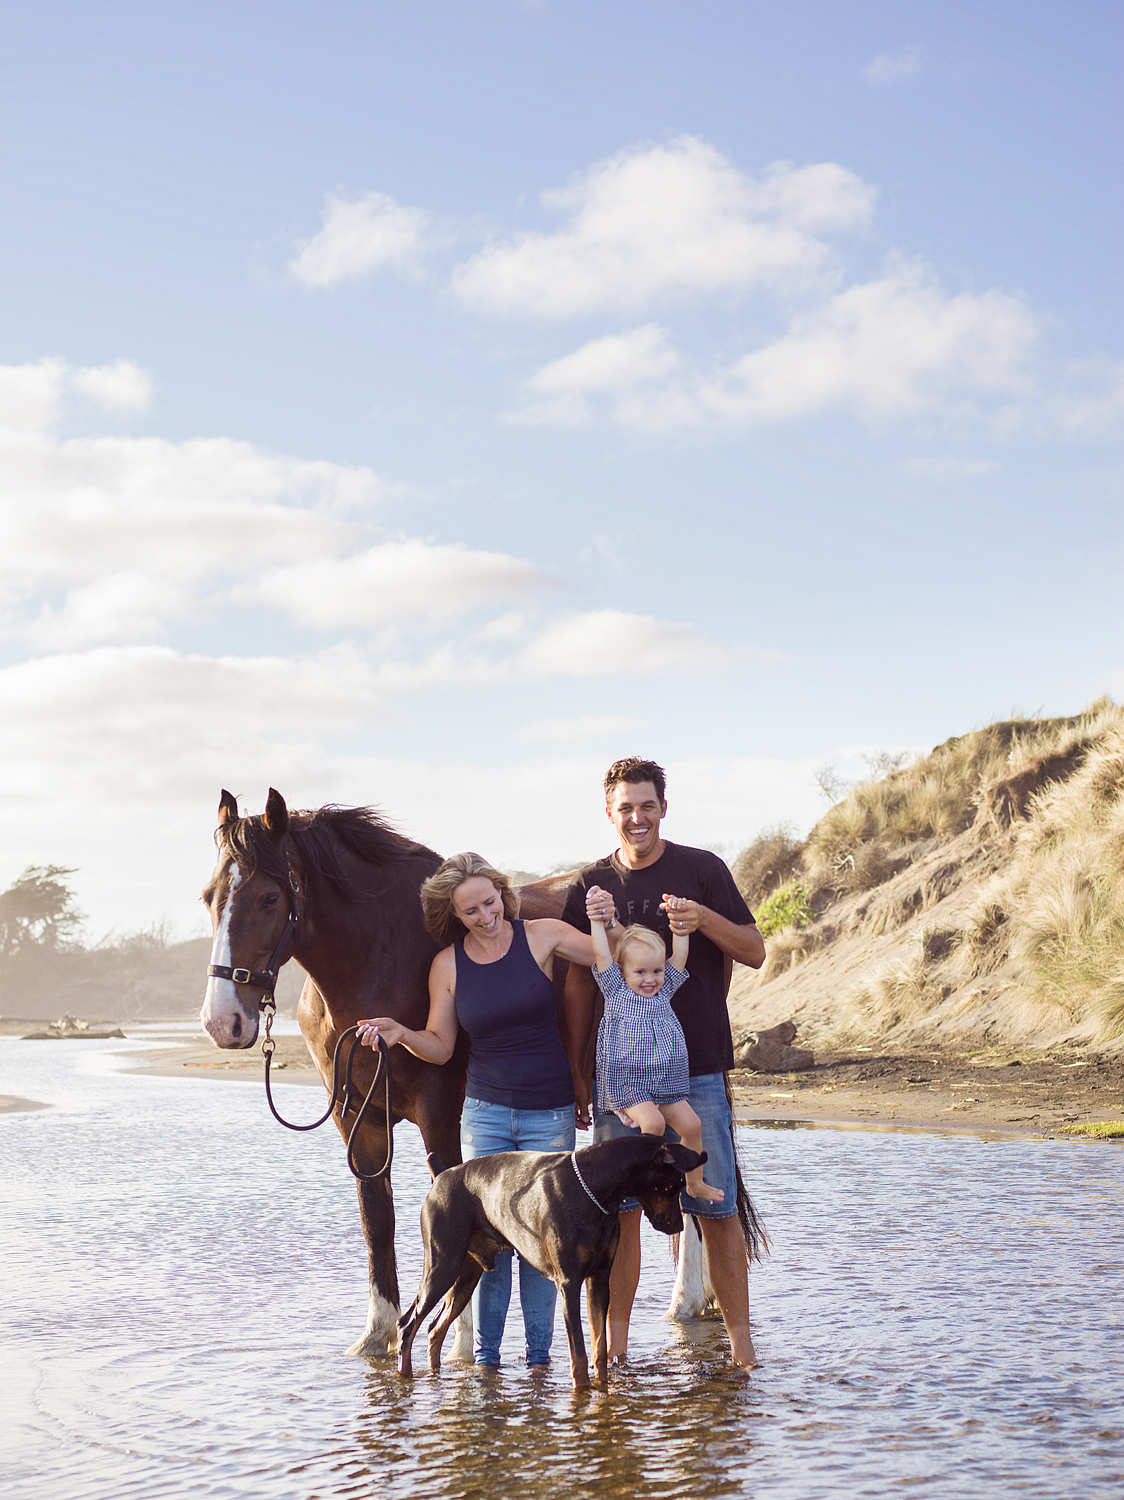 Family Portrait of couple with daughter, Horse and Dog on Beach